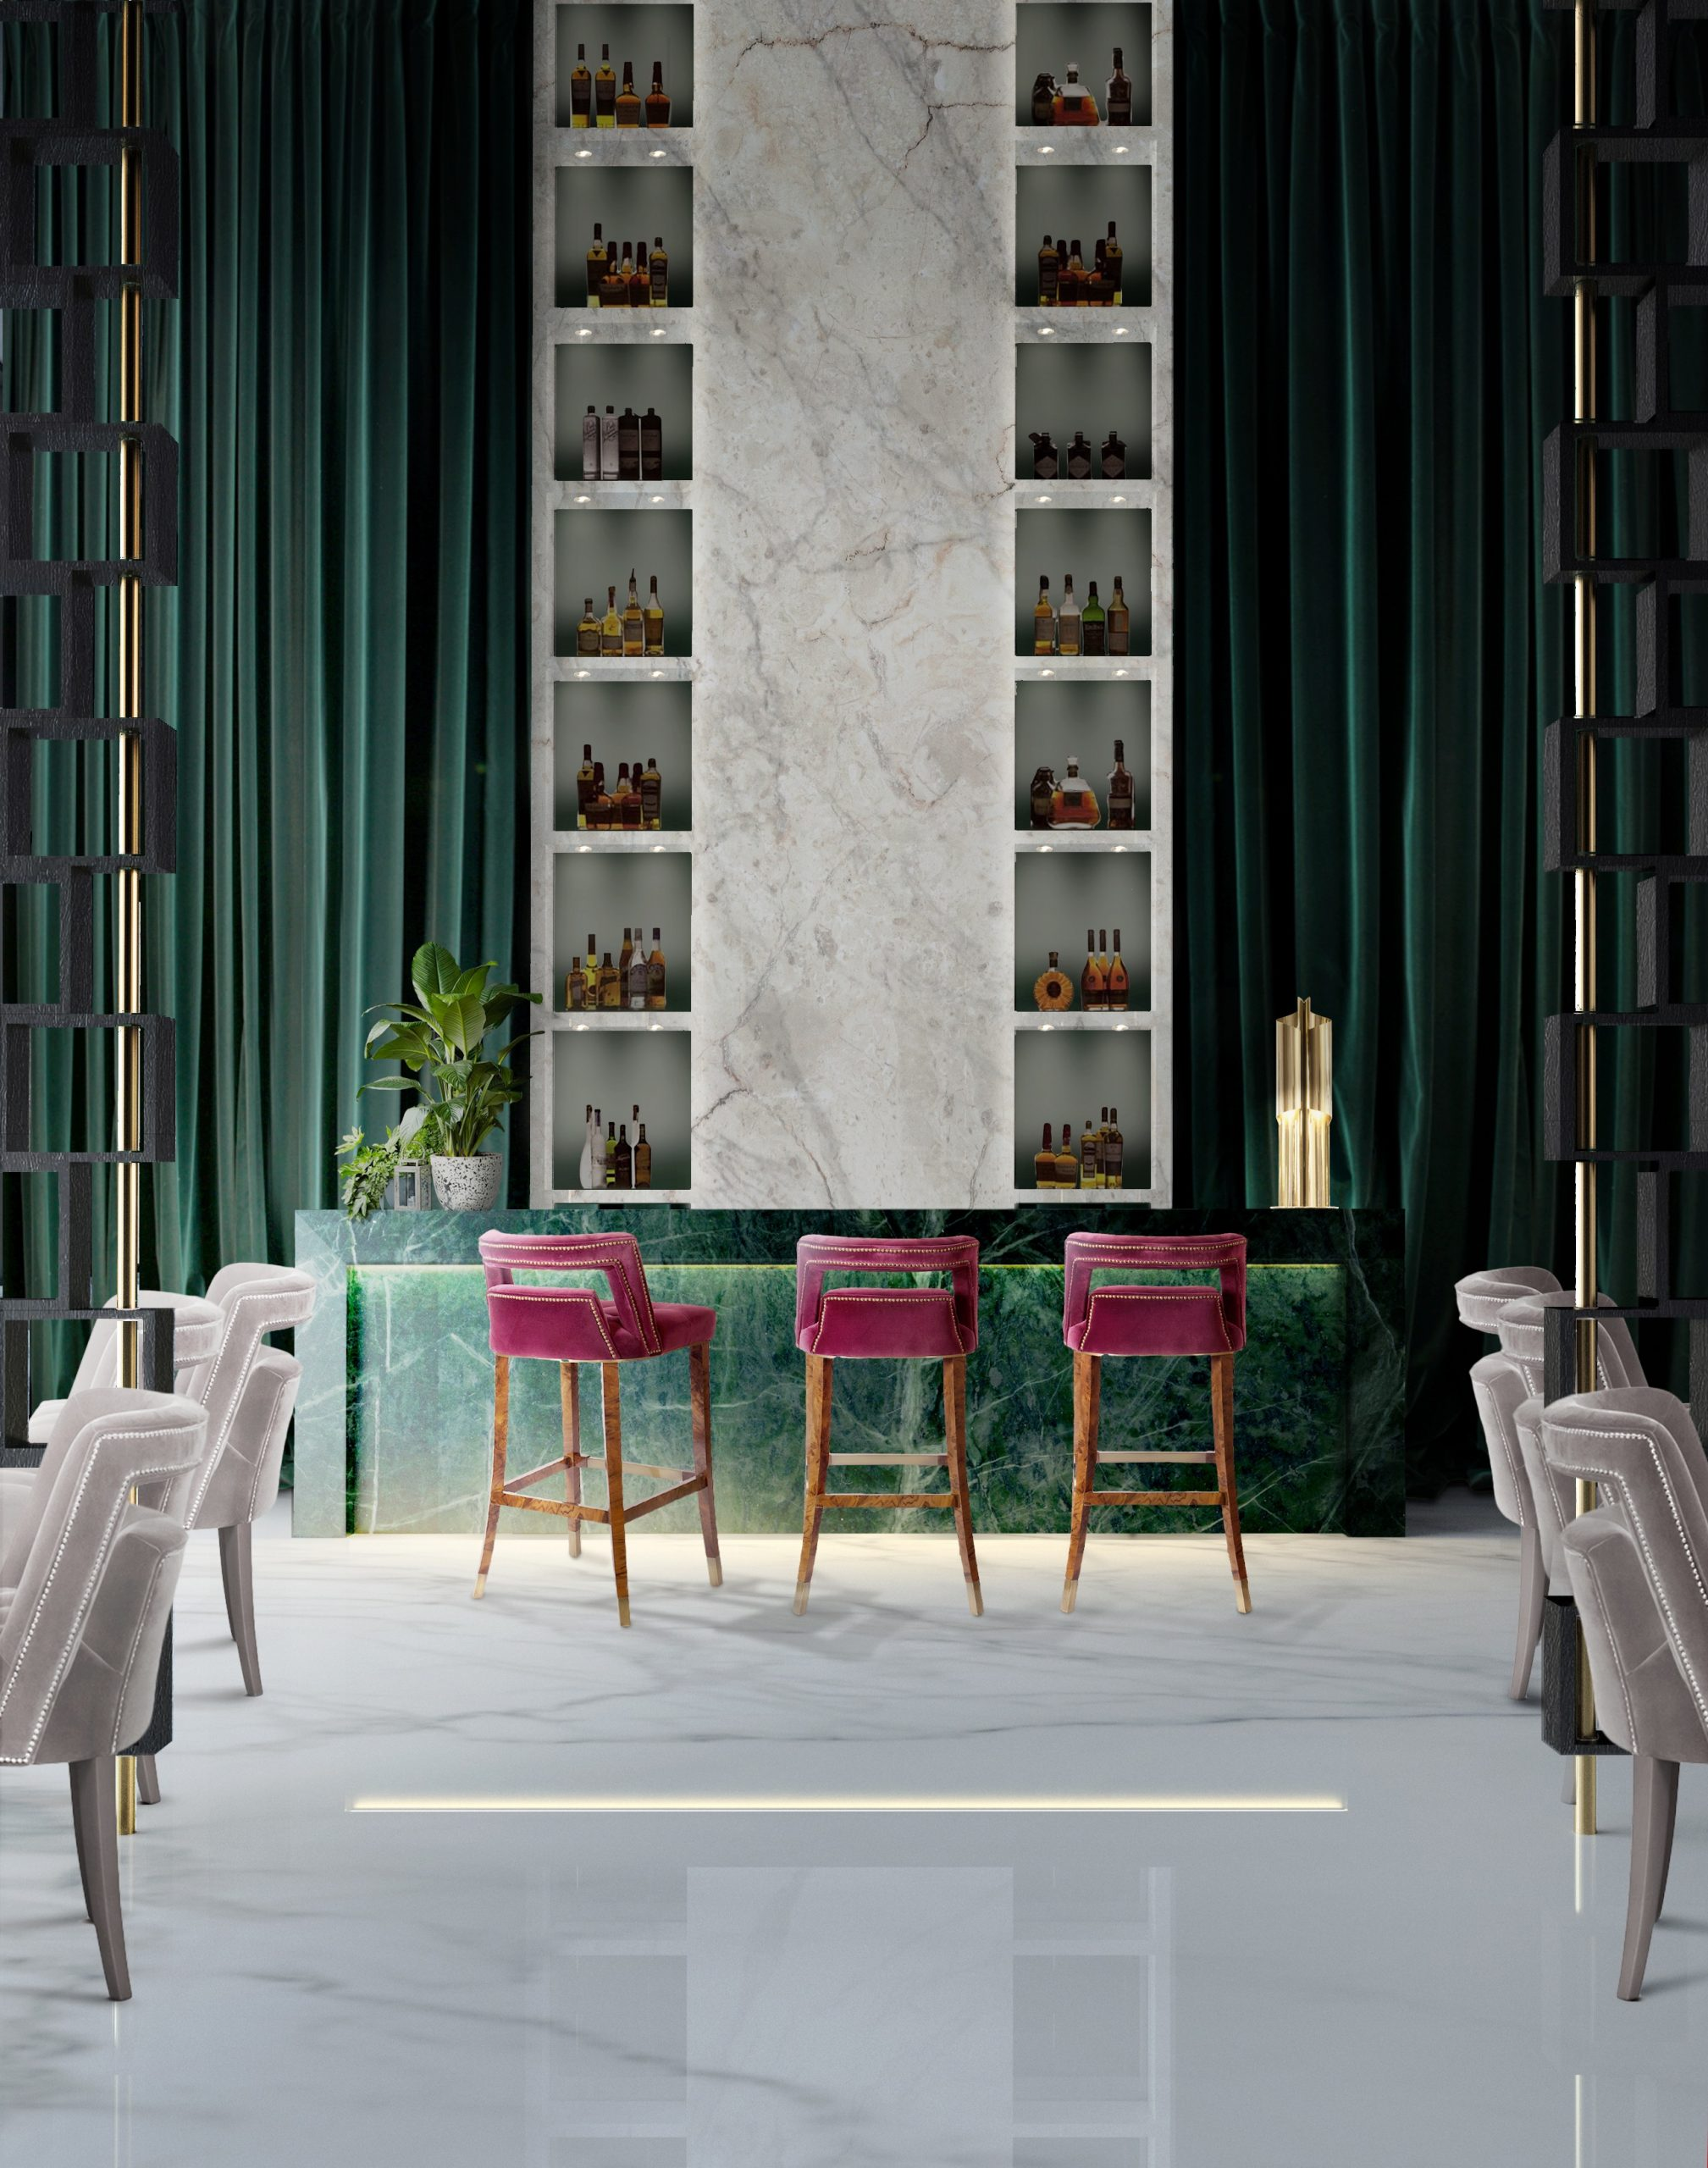 20 Stylish Dining Seating Options For Modern Hotels dining seating 20 Stylish Dining Seating Options For Modern Hotels 20 Stylish Dining Seating Options For Modern Hotels 6   scaled